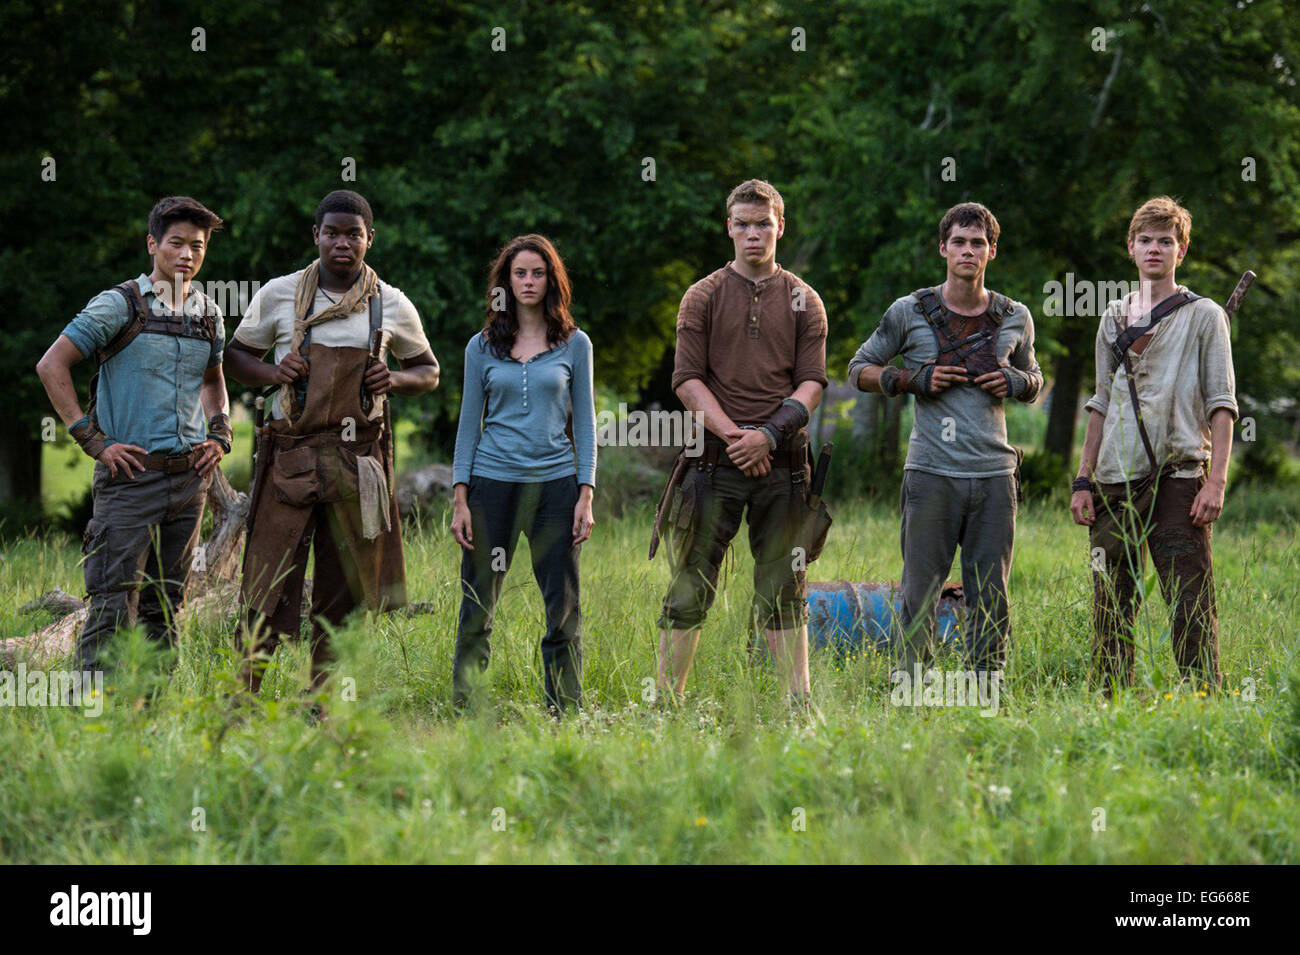 dexter darden interviewdexter darden instagram, dexter darden, декстер дарден, dexter darden height, dexter darden nathalie emmanuel, декстер дарден википедия, dexter darden scorch trials, dexter darden maze runner, dexter darden twitter, dexter darden net worth, dexter darden girlfriend, dexter darden victorious, dexter darden movies, dexter darden fry pan, dexter darden minutemen, dexter darden biography, dexter darden joyful noise, dexter darden facebook, dexter darden interview, dexter darden gay